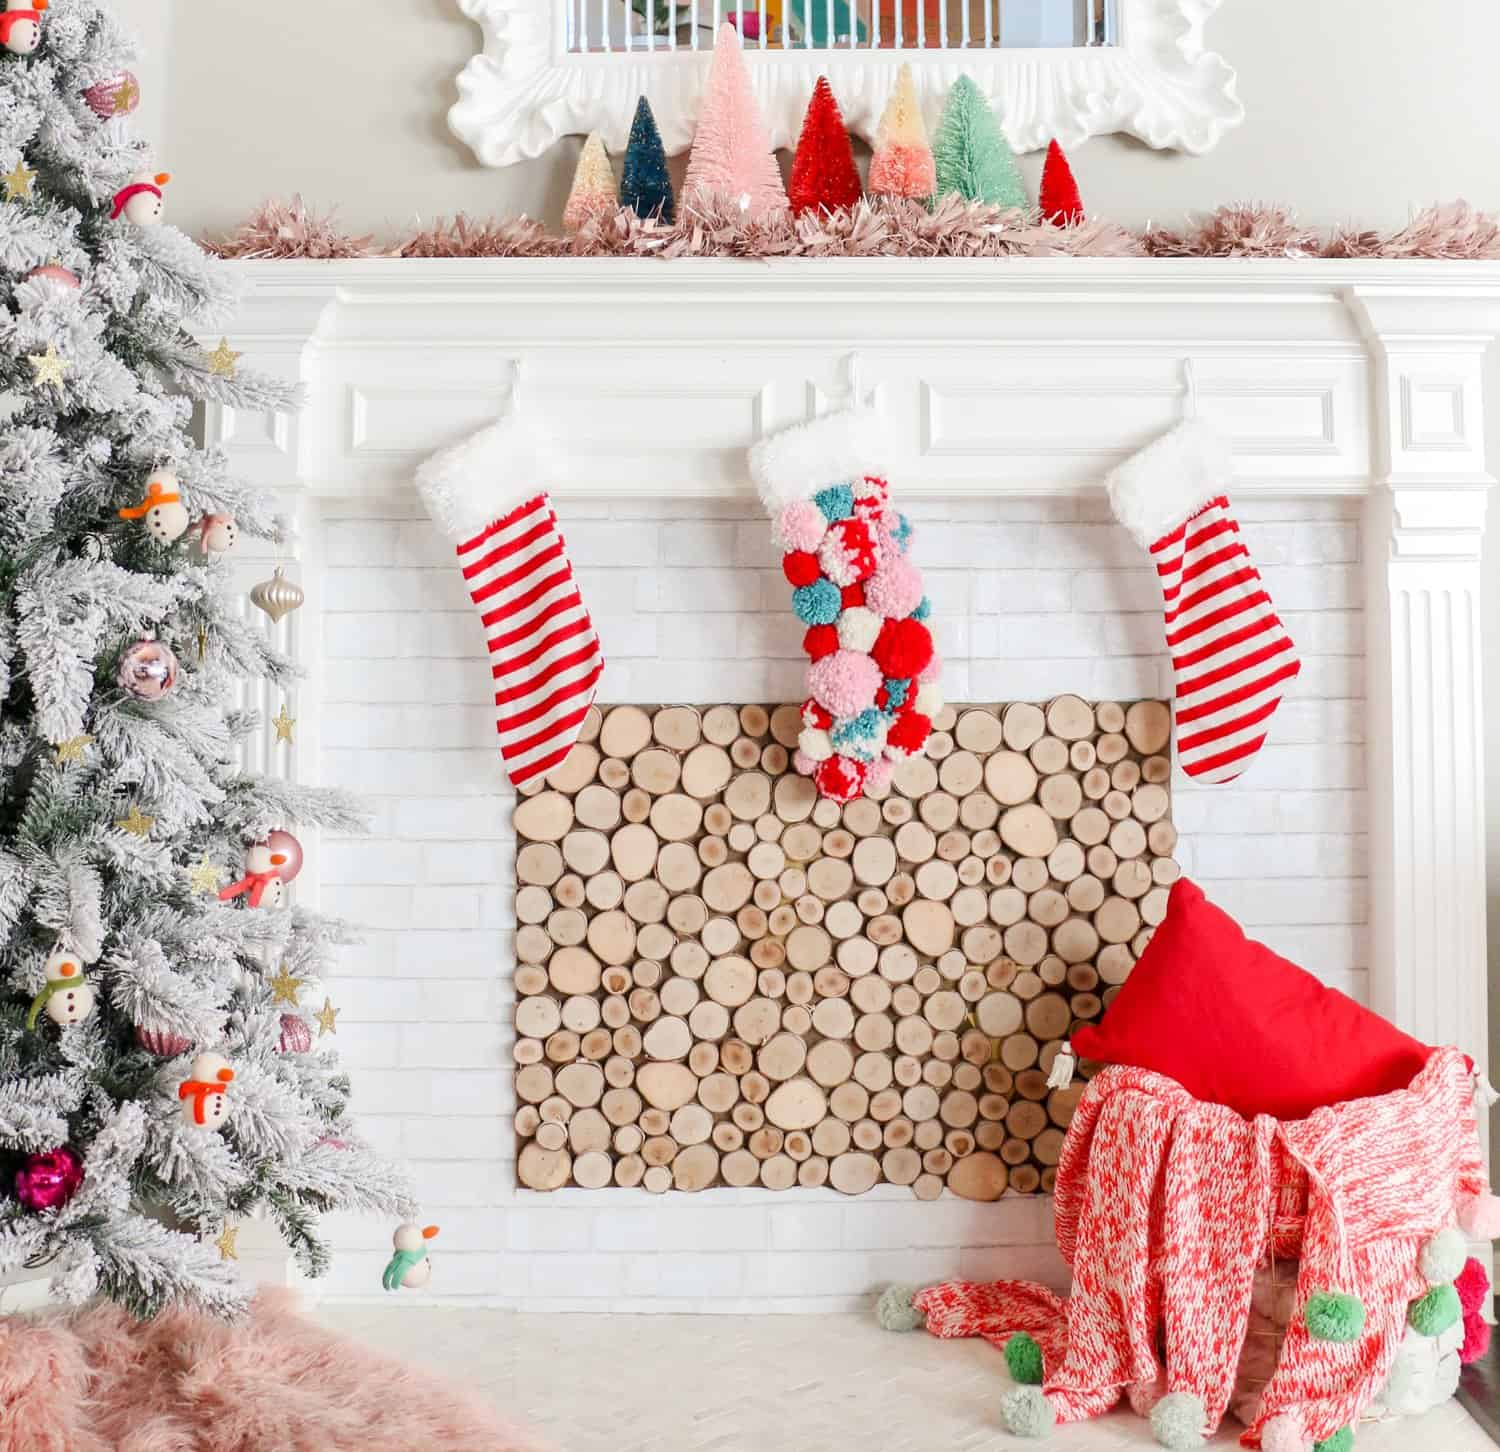 Home for the Holidays: Our Best Holiday Crafts + DIYs - A Beautiful Mess